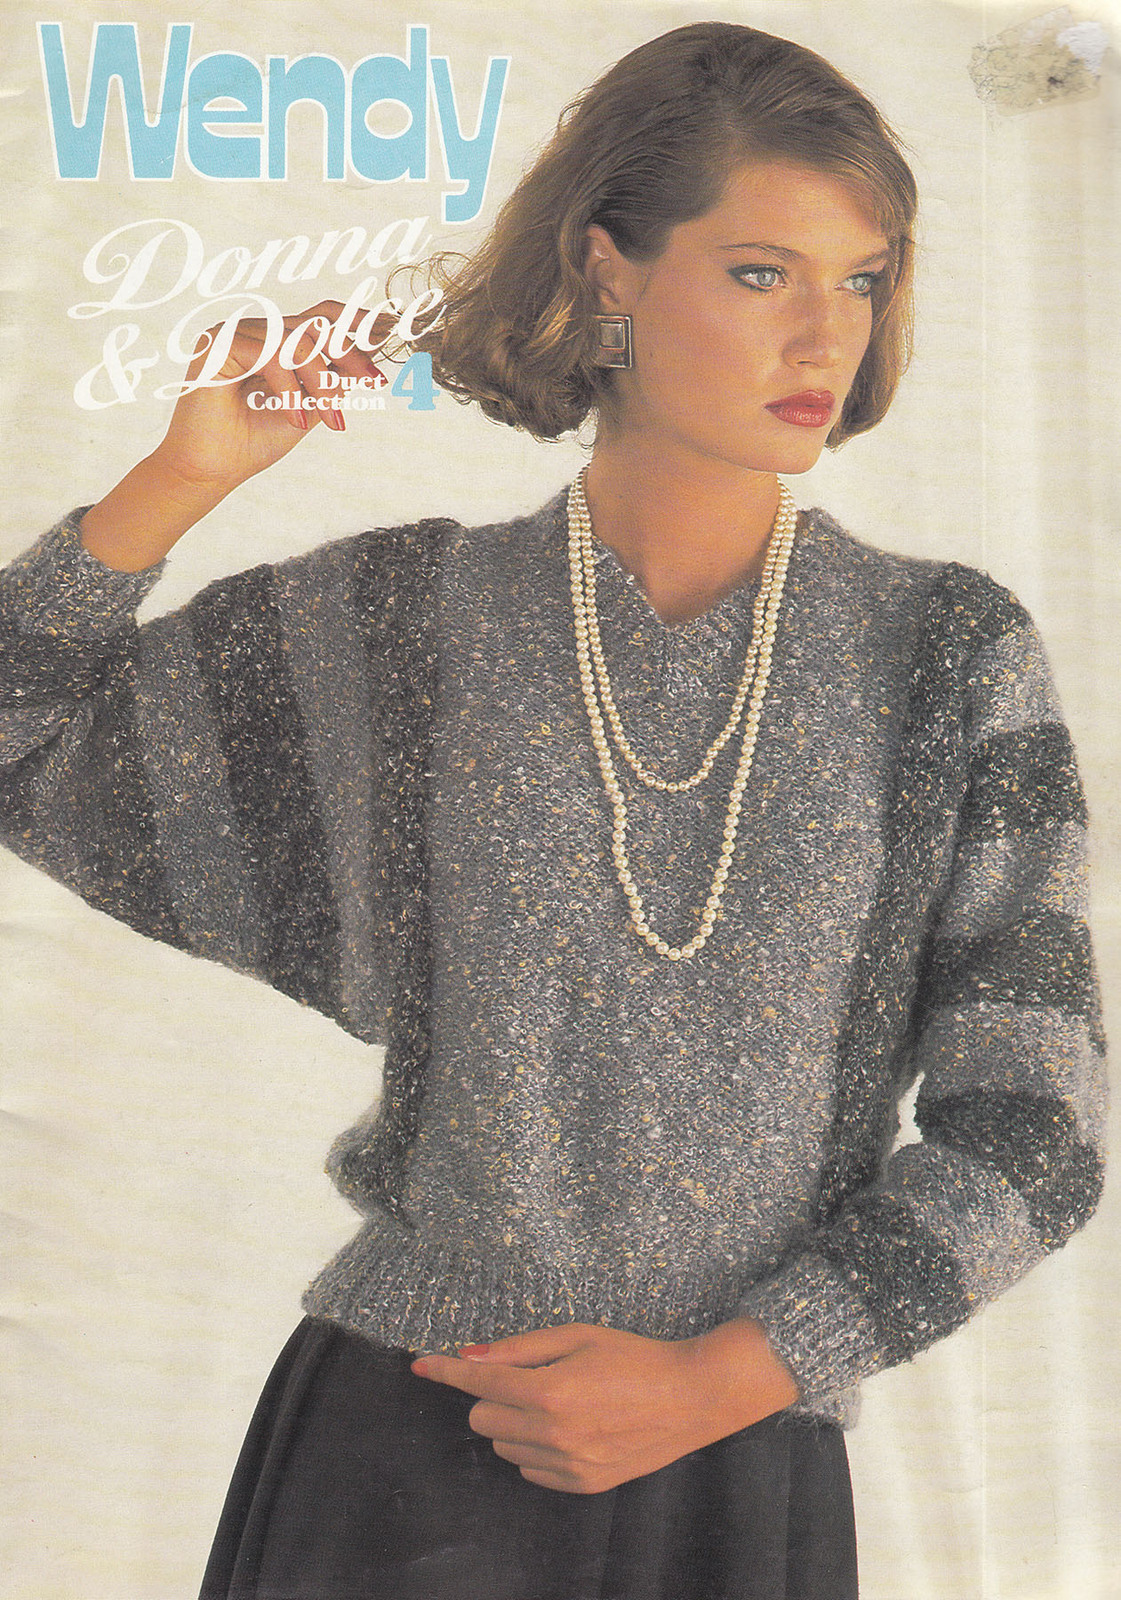 Primary image for WENDY DONNA & DOLCE COLLECTION 4 LADIES & MENS KNIT DESIGNS U.K. 34 PAGES